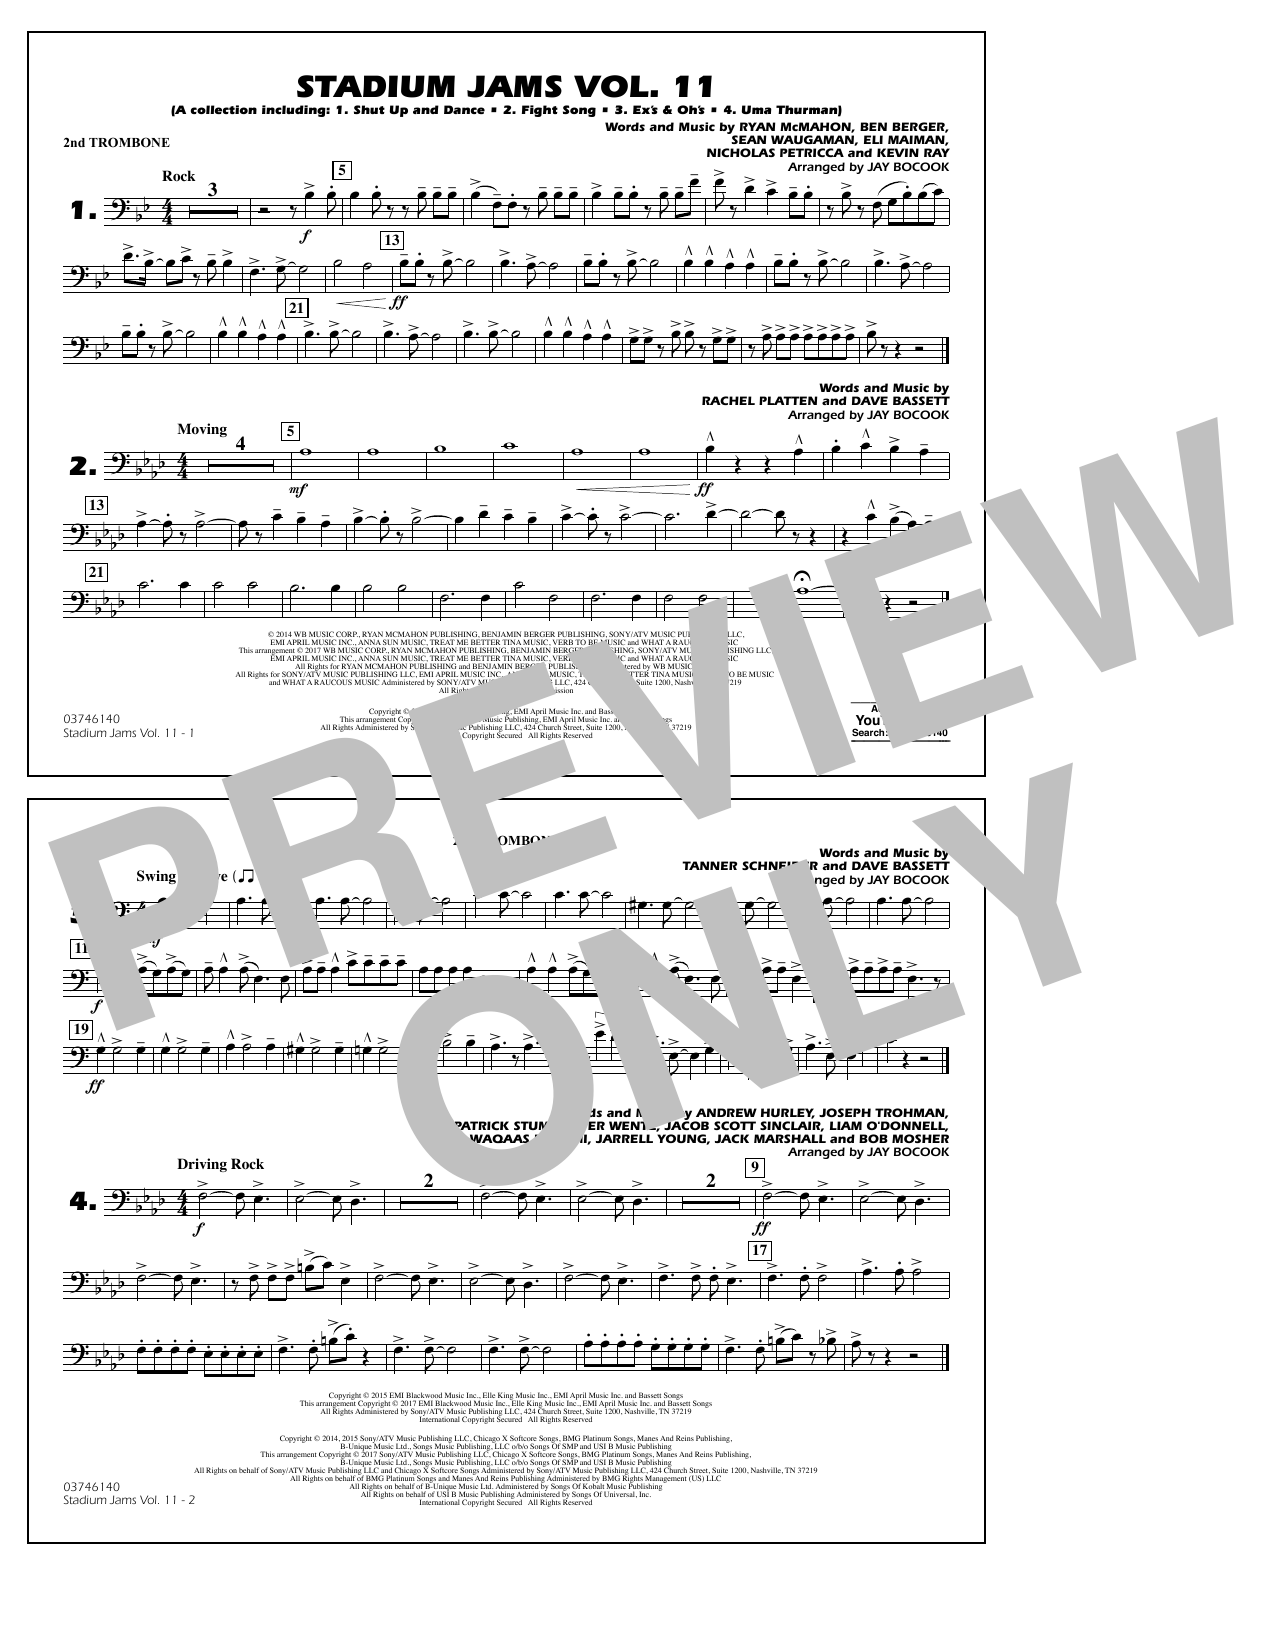 Stadium Jams Volume 11 - 2nd Trombone Sheet Music